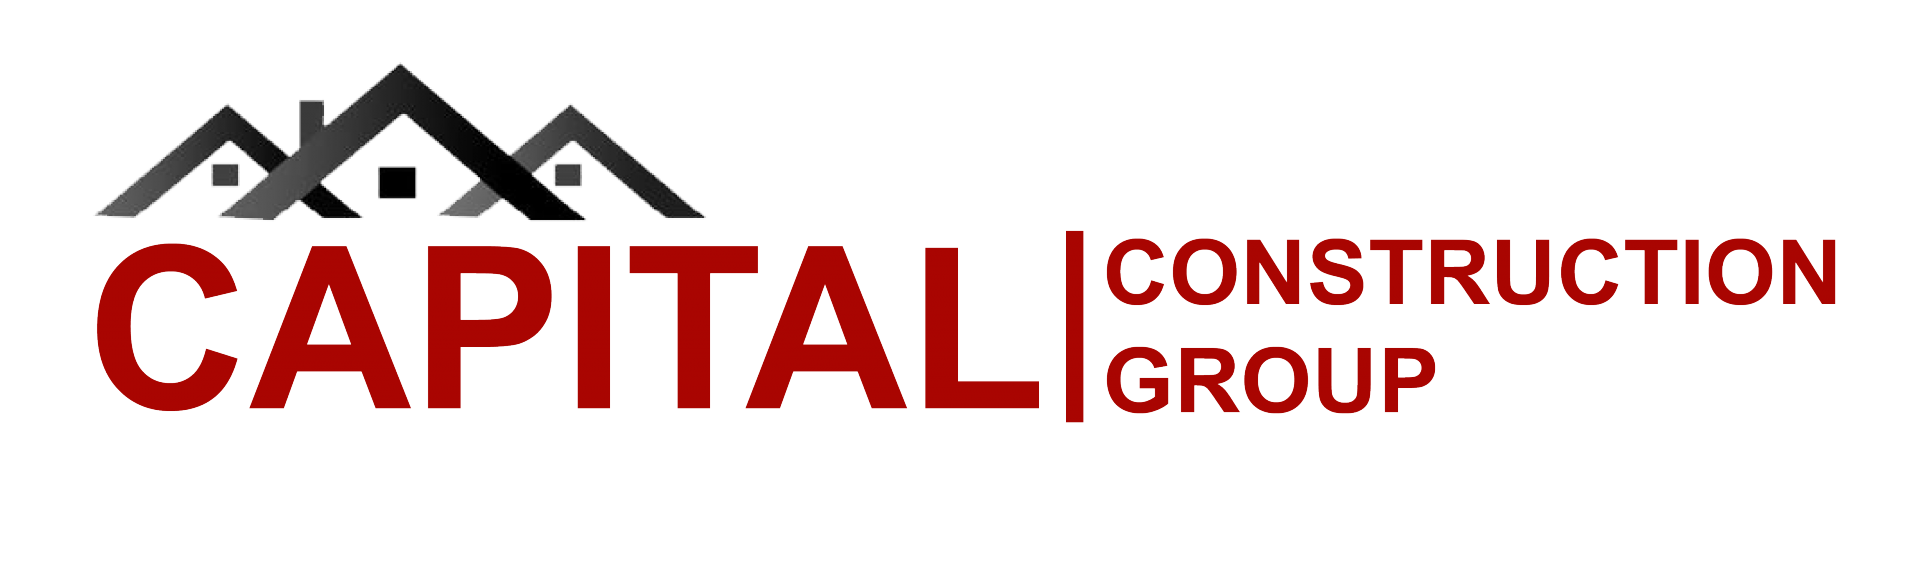 Capital Construction Group